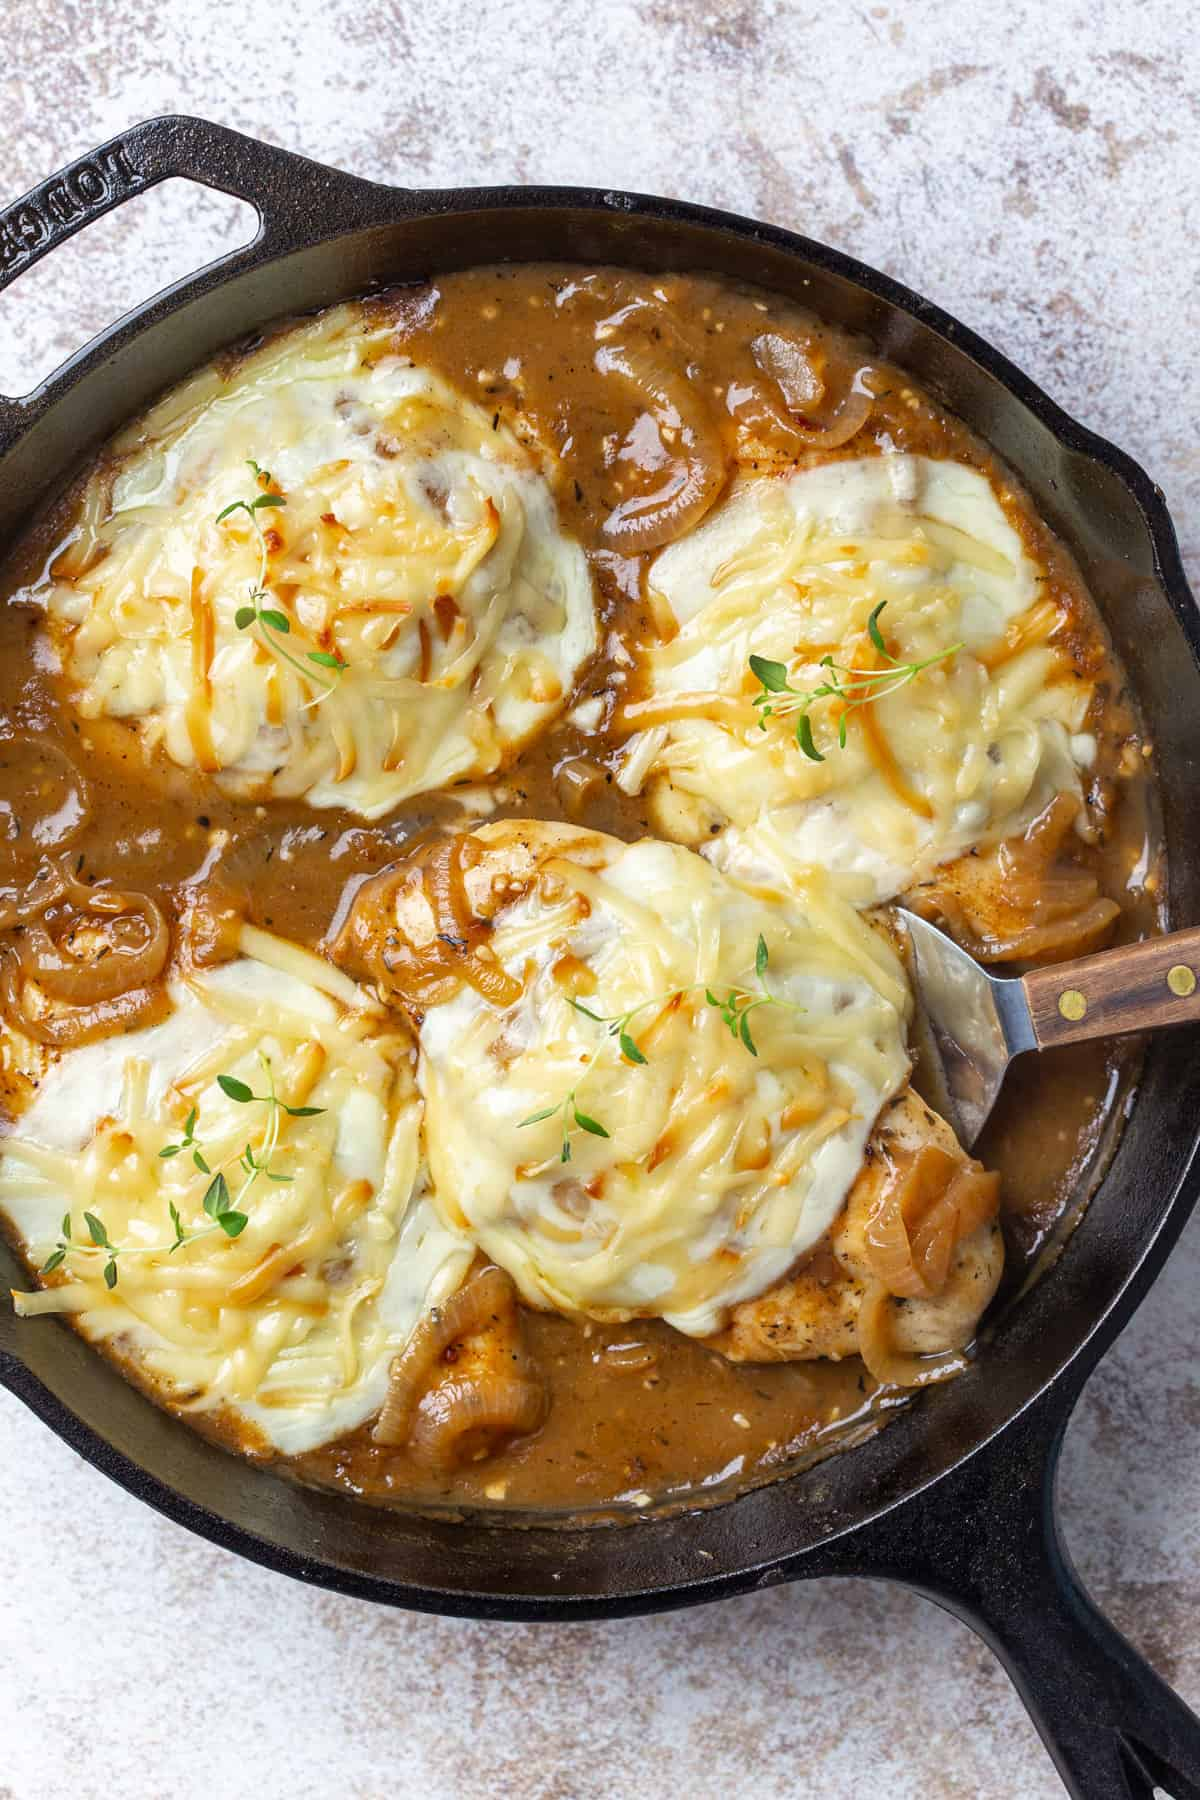 Overhead view of chicken topped with cheese in an onion gravy in a skillet.